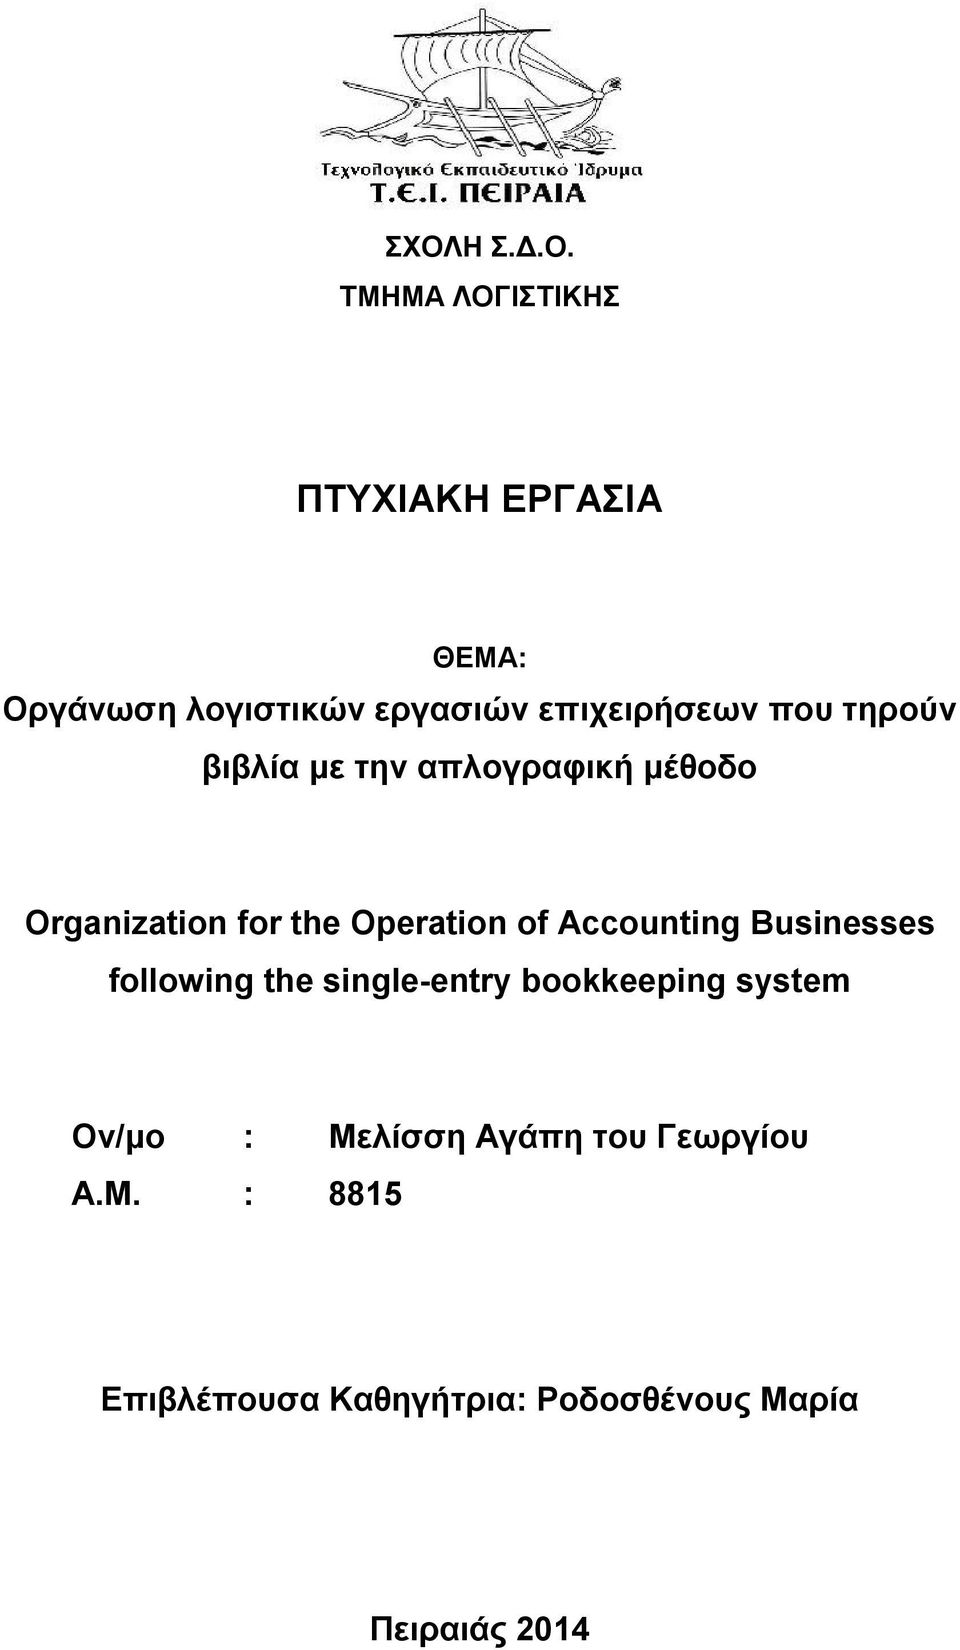 Operation of Accounting Businesses following the single-entry bookkeeping system